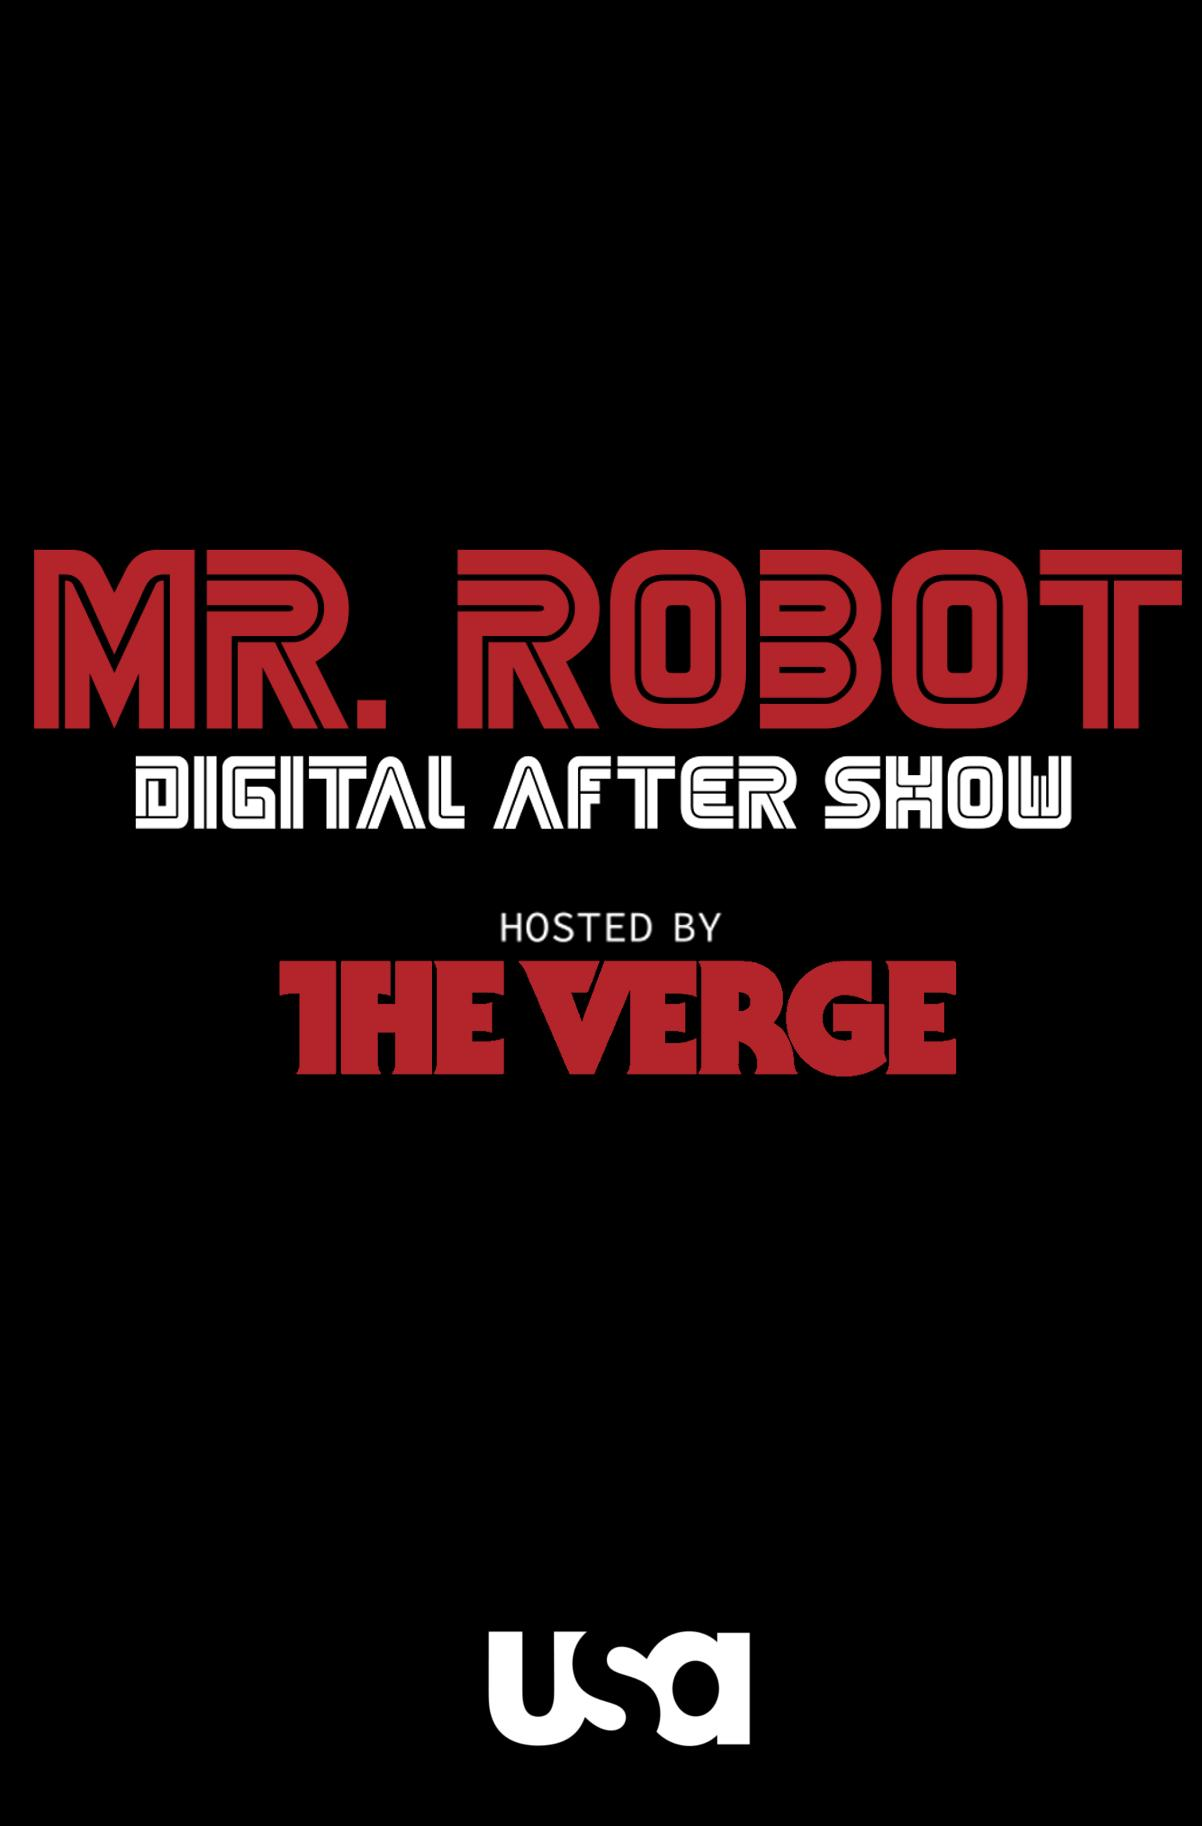 Mr Robot Digital After Show Tv Series 2016 Imdb